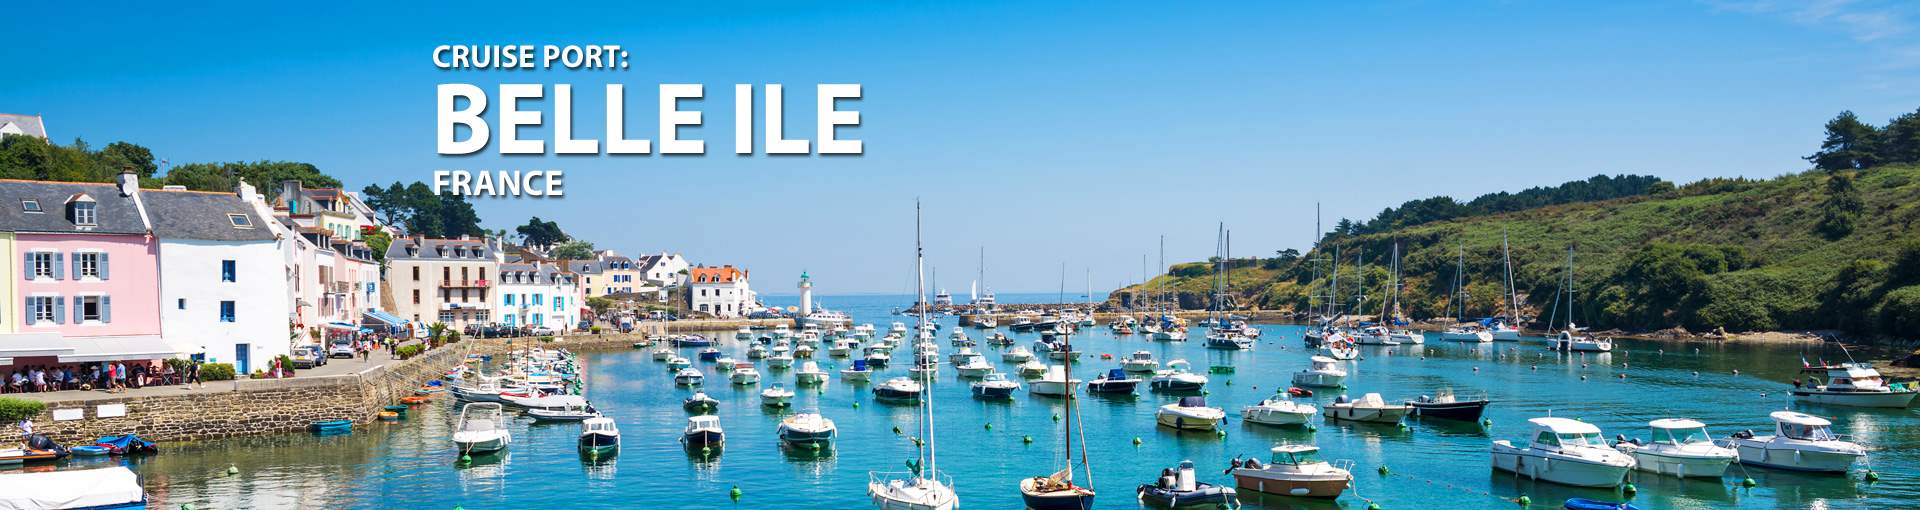 Cruises to Belle Ile, France